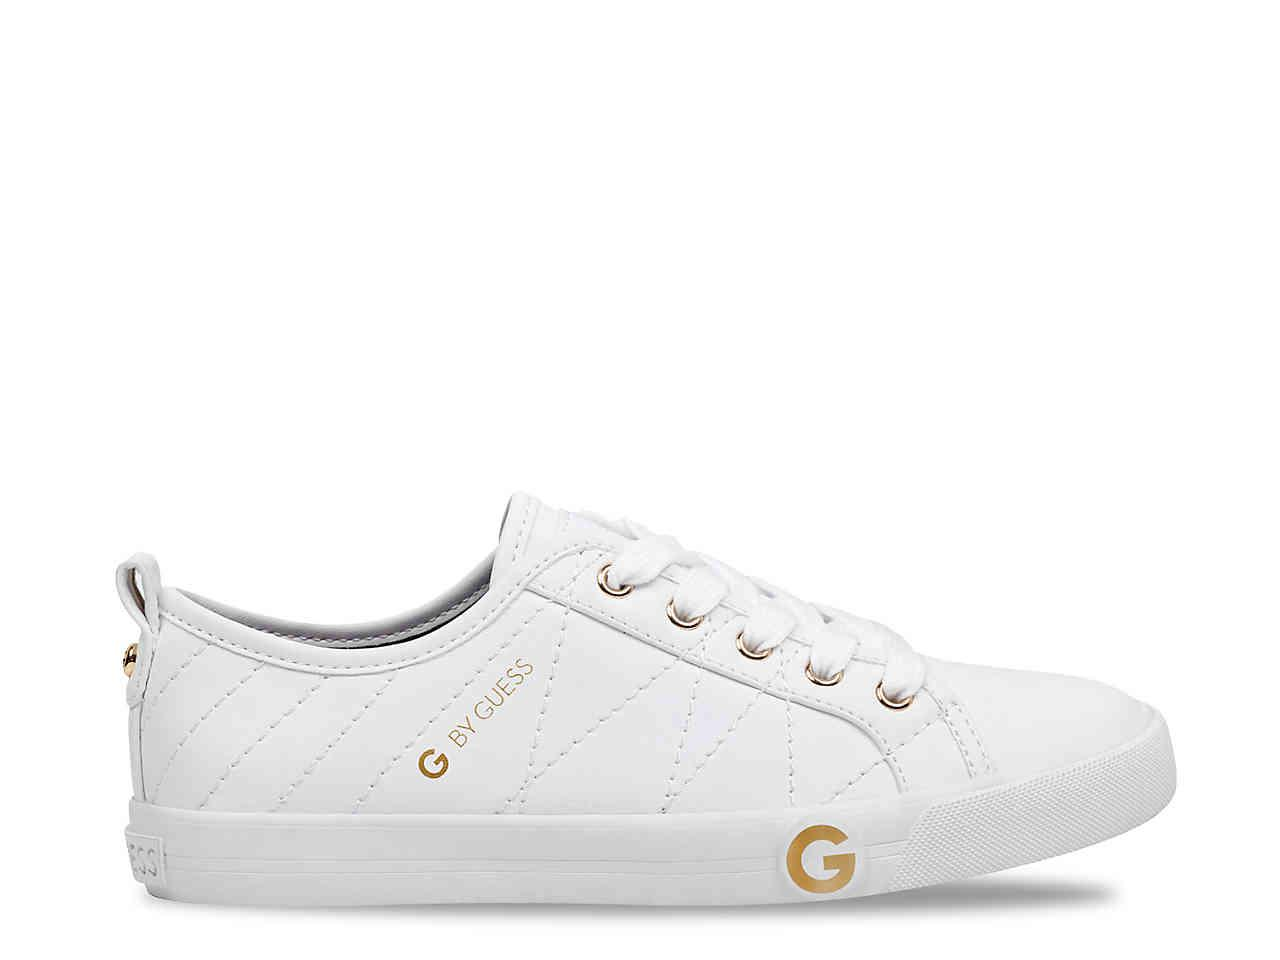 G by Guess Orfin Sneaker in White - Lyst